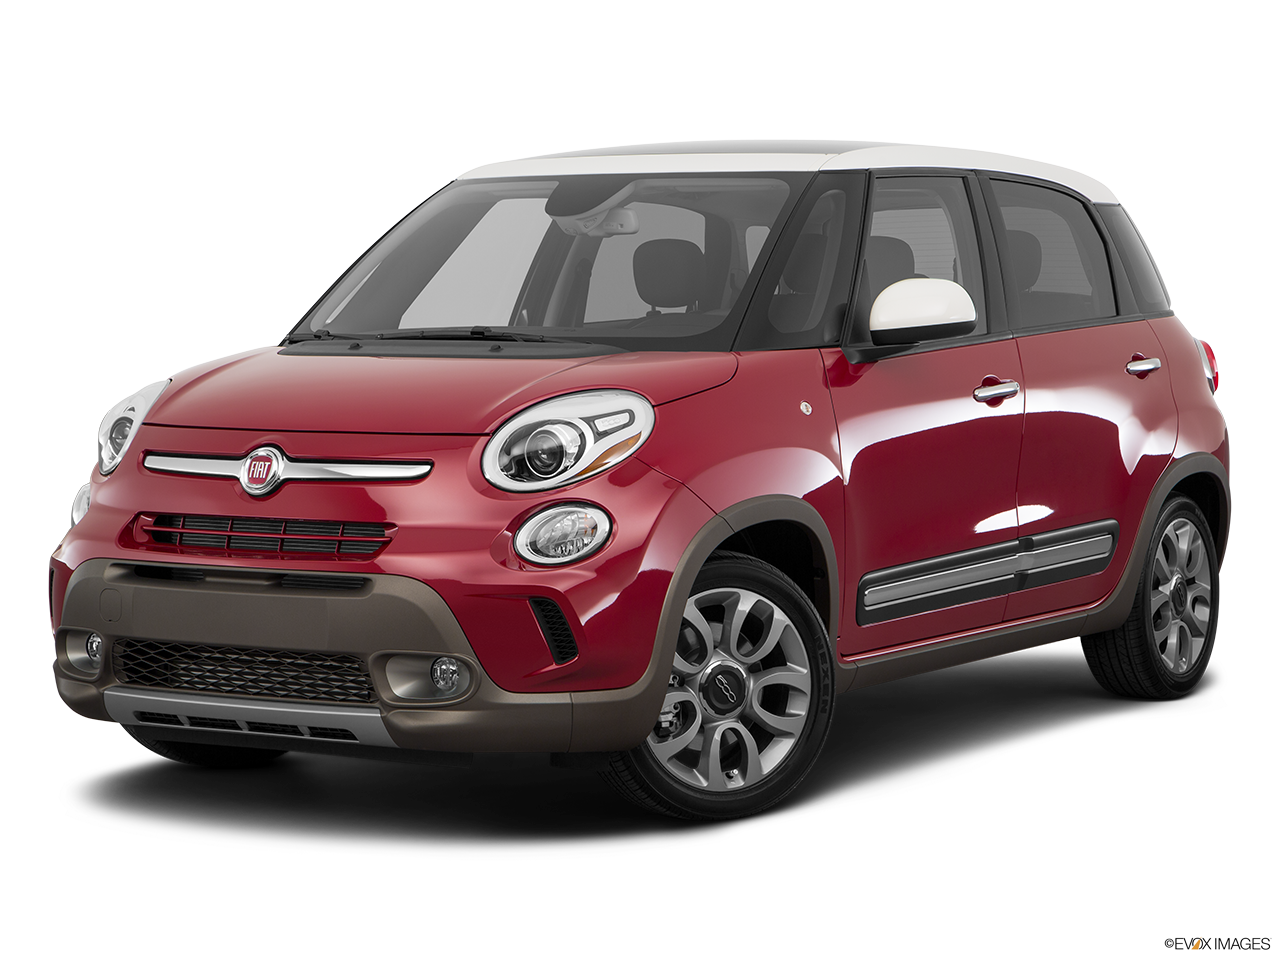 2016 fiat 500l west palm beach arrigo fiat west palm beach. Black Bedroom Furniture Sets. Home Design Ideas